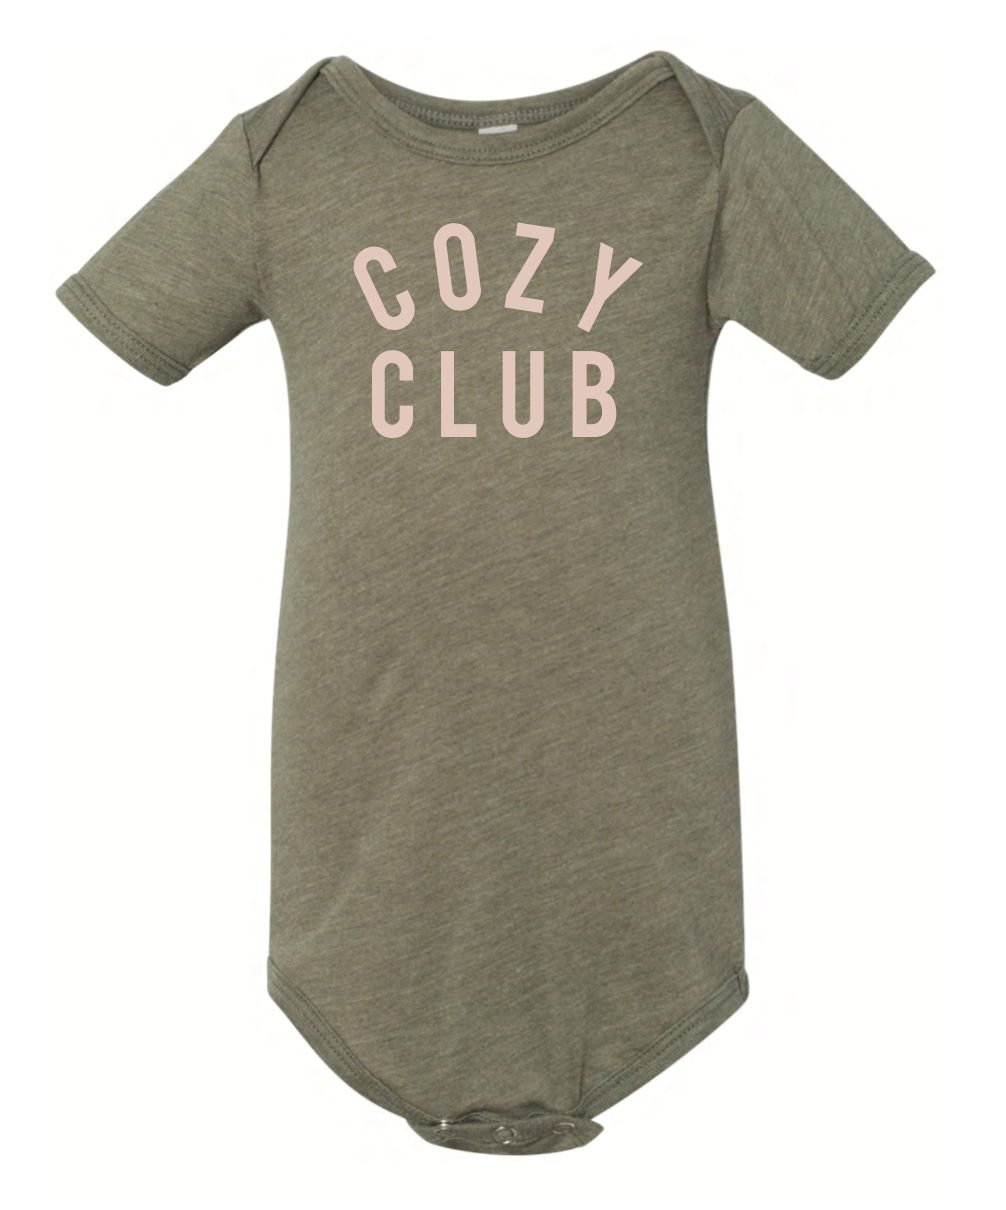 Cozy Club Mini Short Sleeve Onesie - Olive